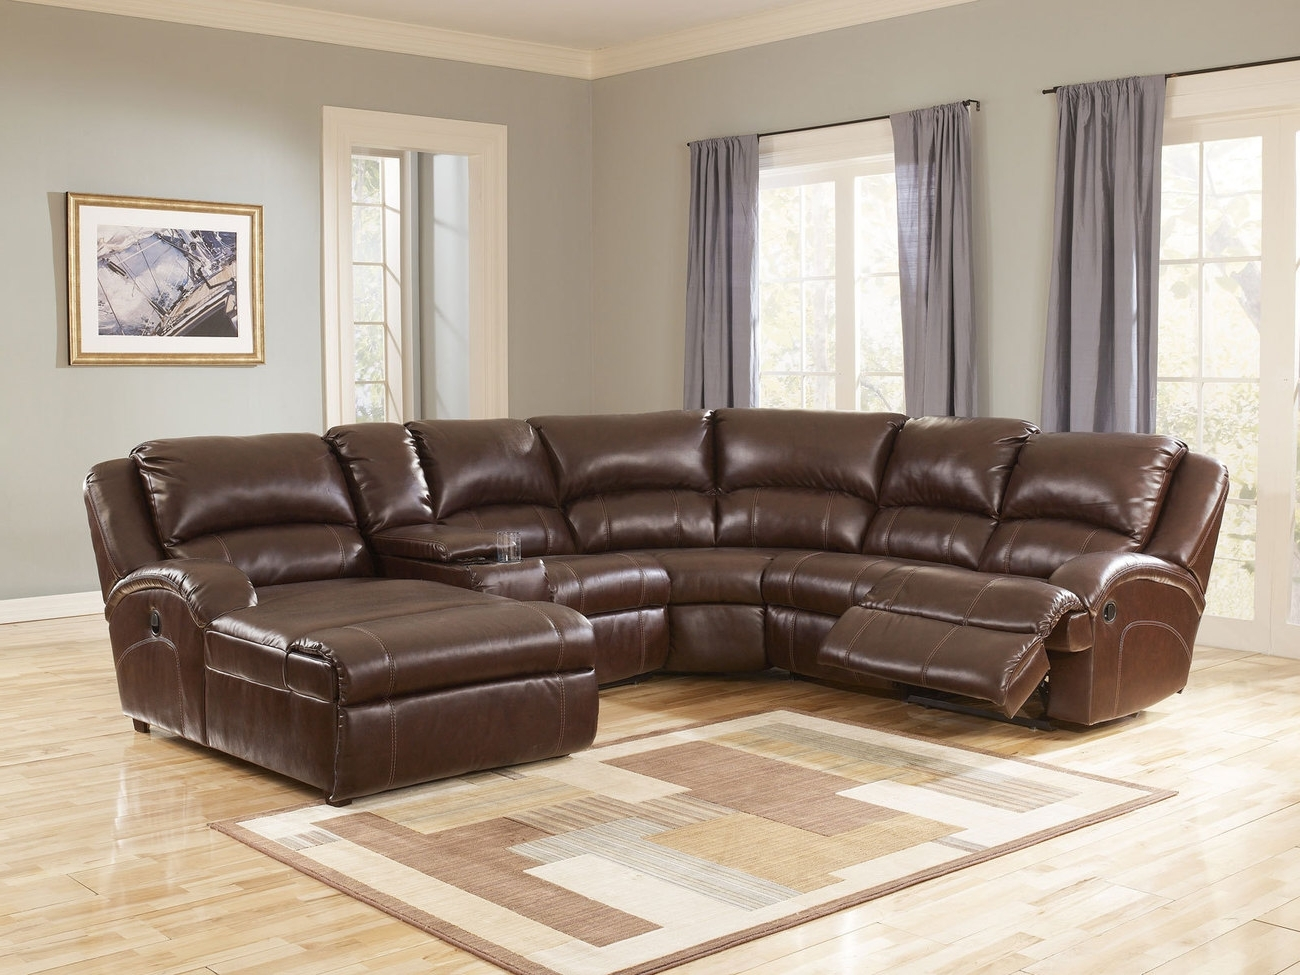 Most Up To Date Remarkable Leather Sectional Sofa With Power Recliner 21 For Your With Sectional Sofas With Power Recliners (View 16 of 20)